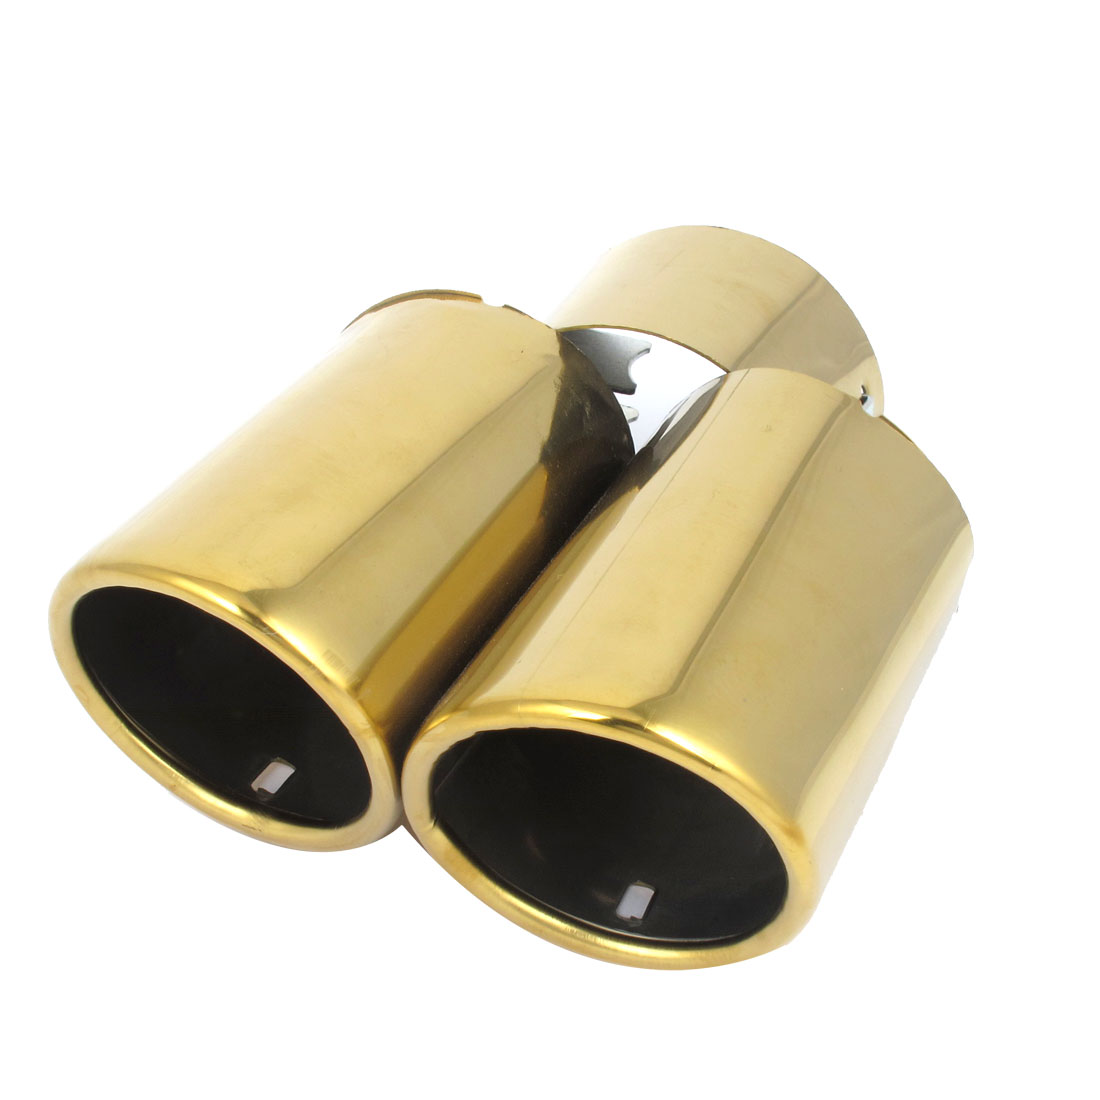 60mm Inlet Dia Gold Tone Exhaust Muffler Tip Dual Outlet Staggered for TIIDA